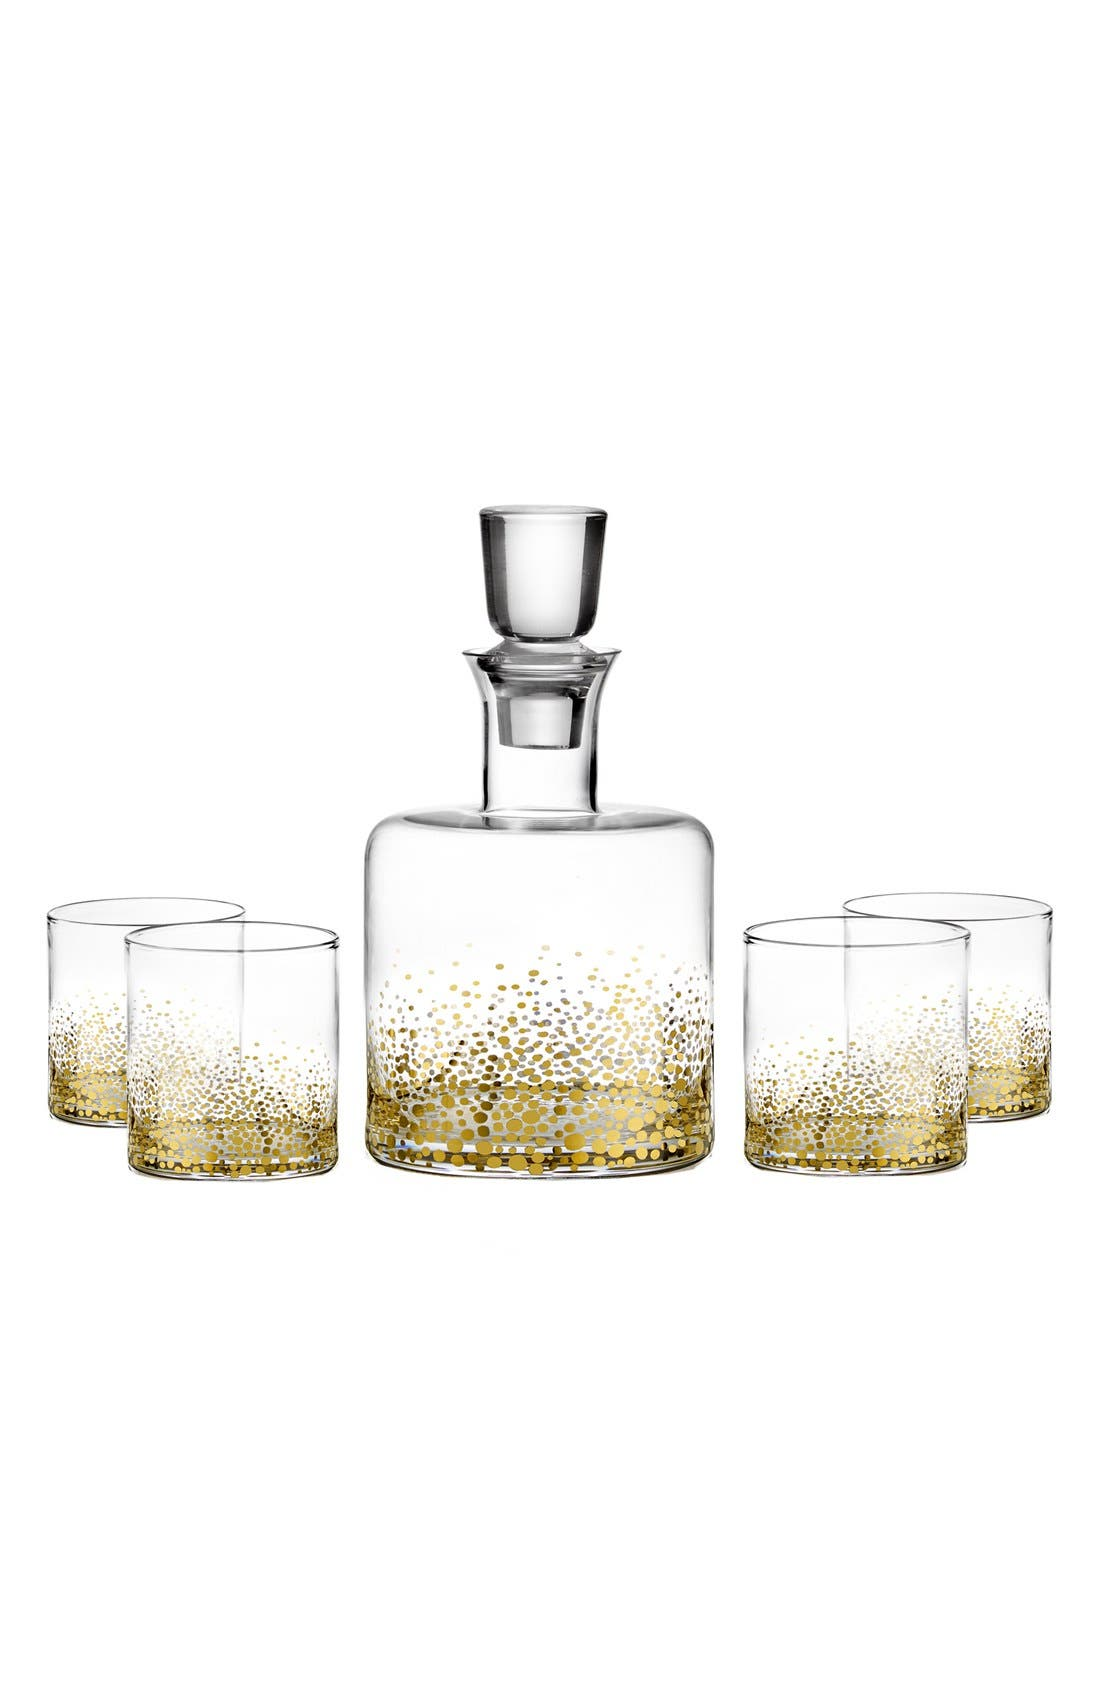 'Daphne' Decanter & Whiskey Glasses,                             Main thumbnail 1, color,                             Luster/ Light Gold